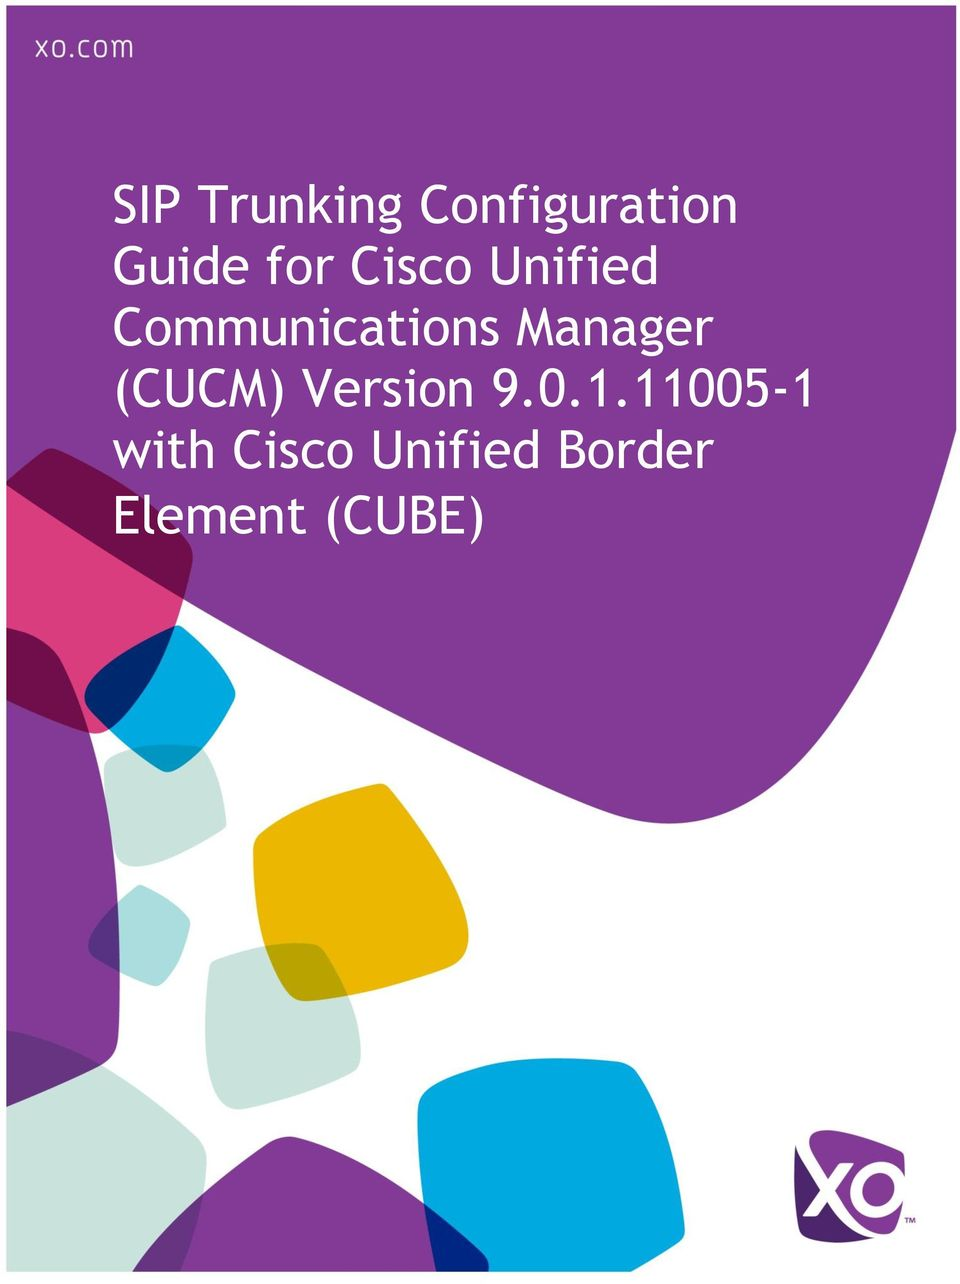 SIP Trunking Configuration Guide for Cisco Unified